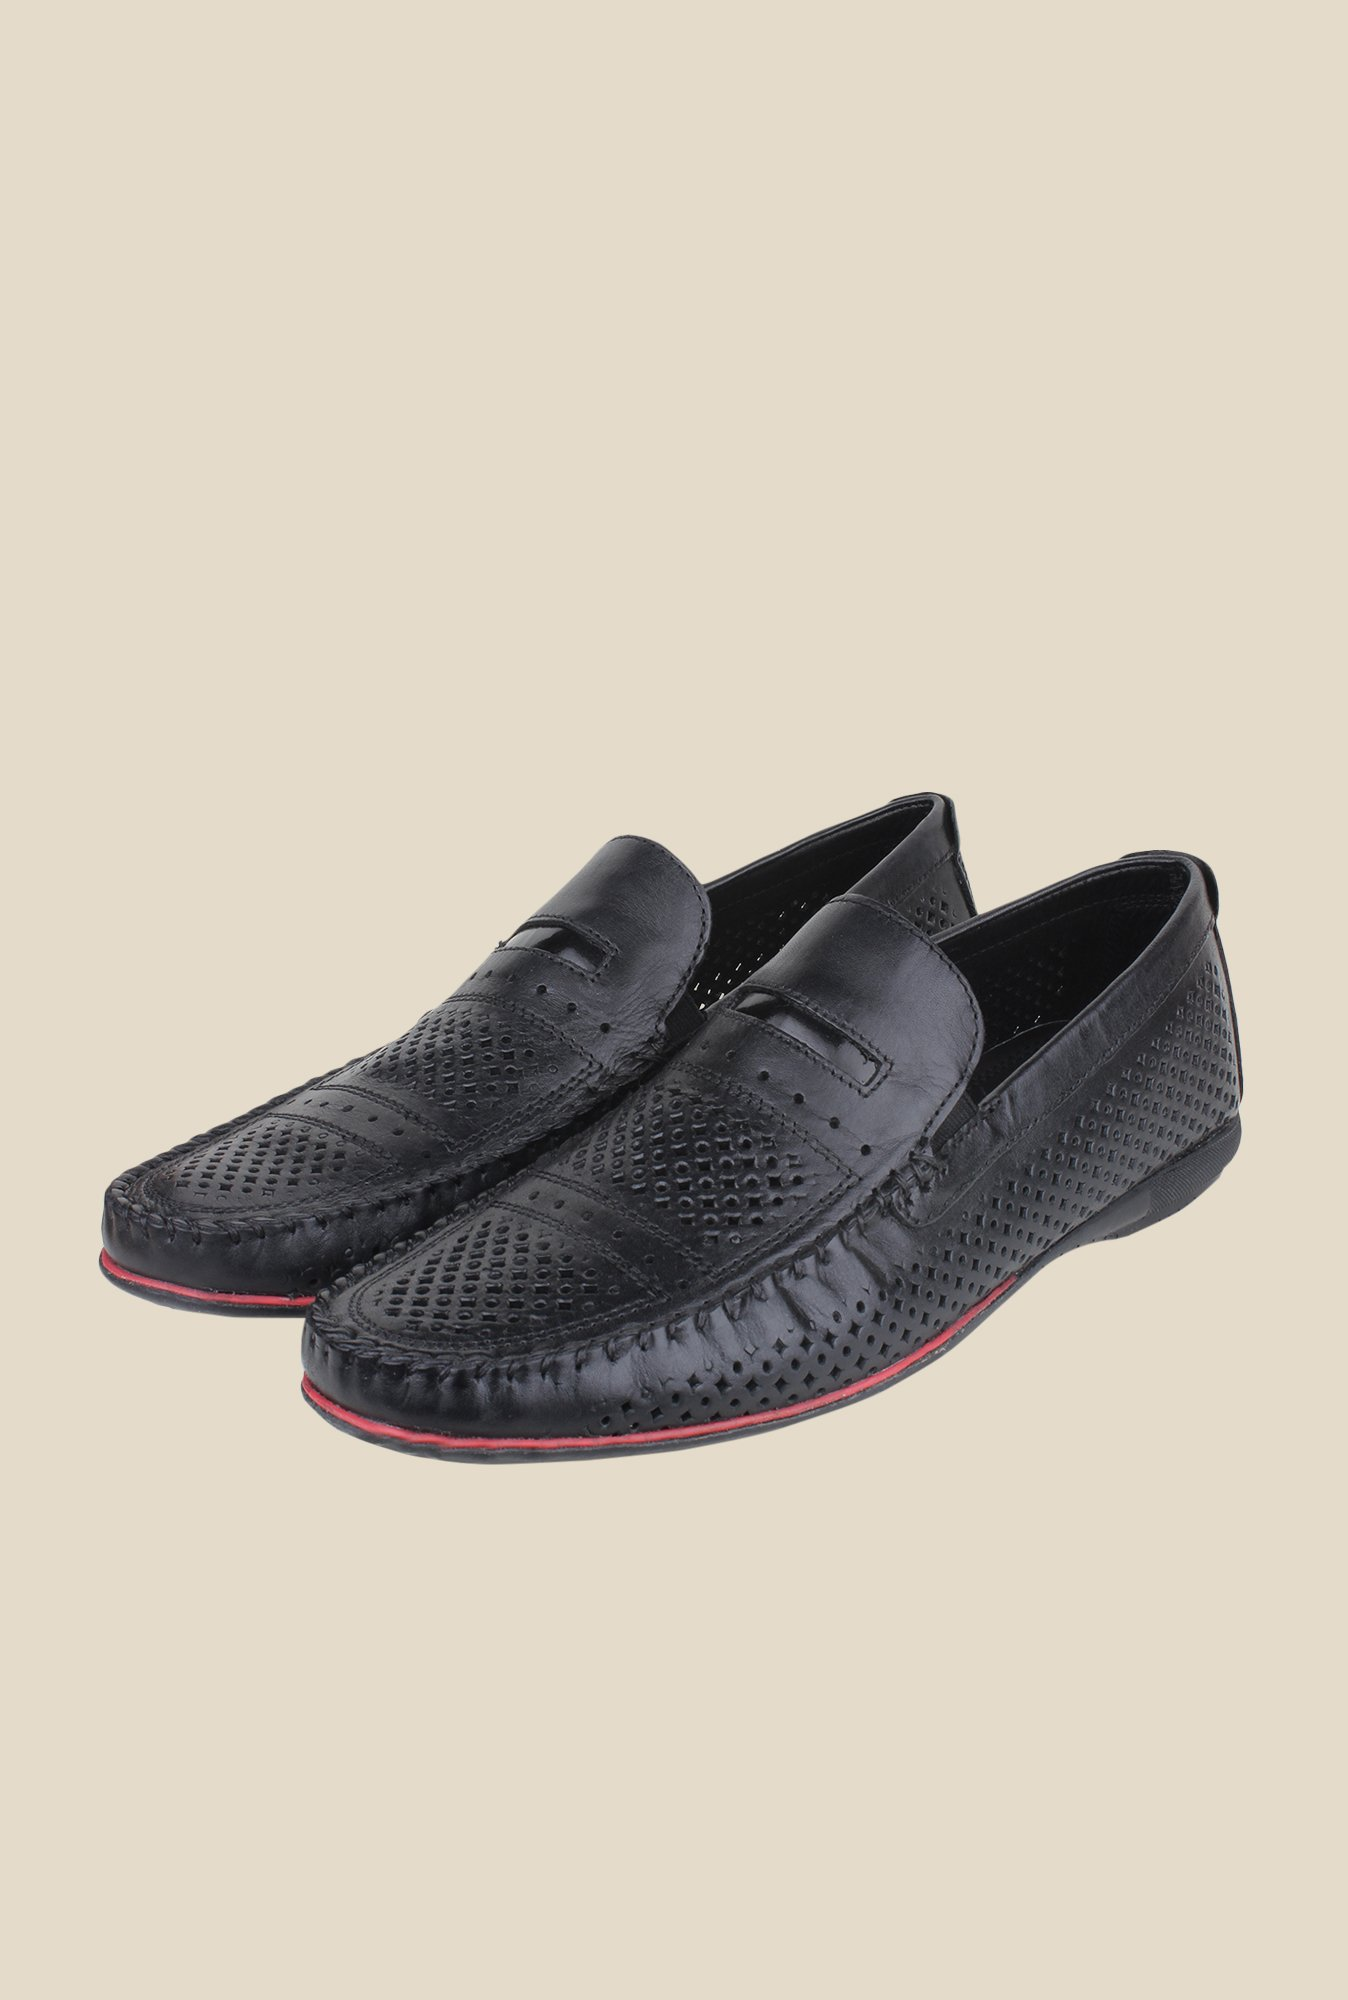 Red Tape Black Leather Slip-Ons